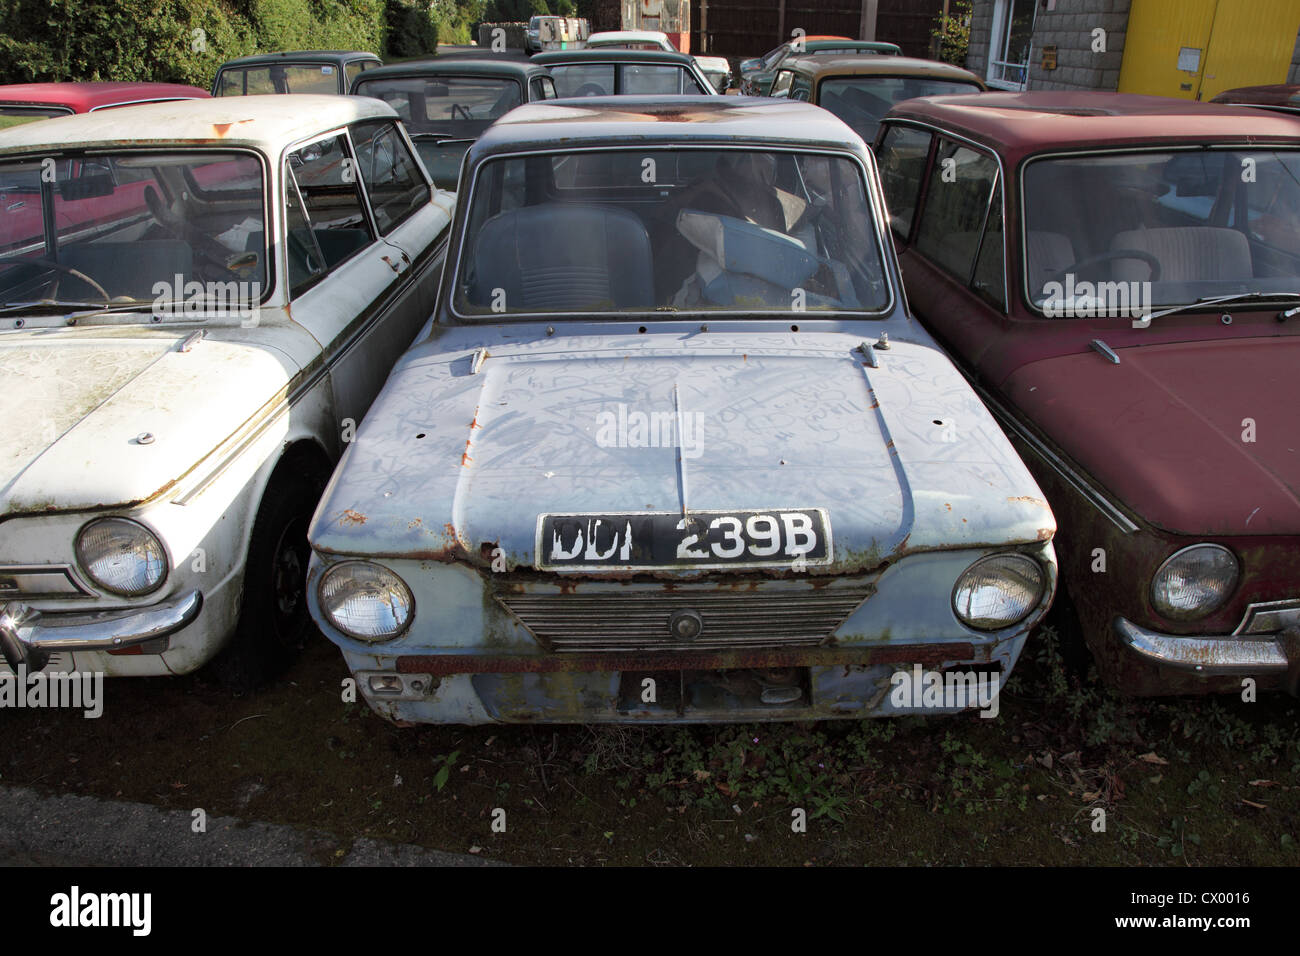 Collection of old Hillman Imp cars awaiting restoration at a ...